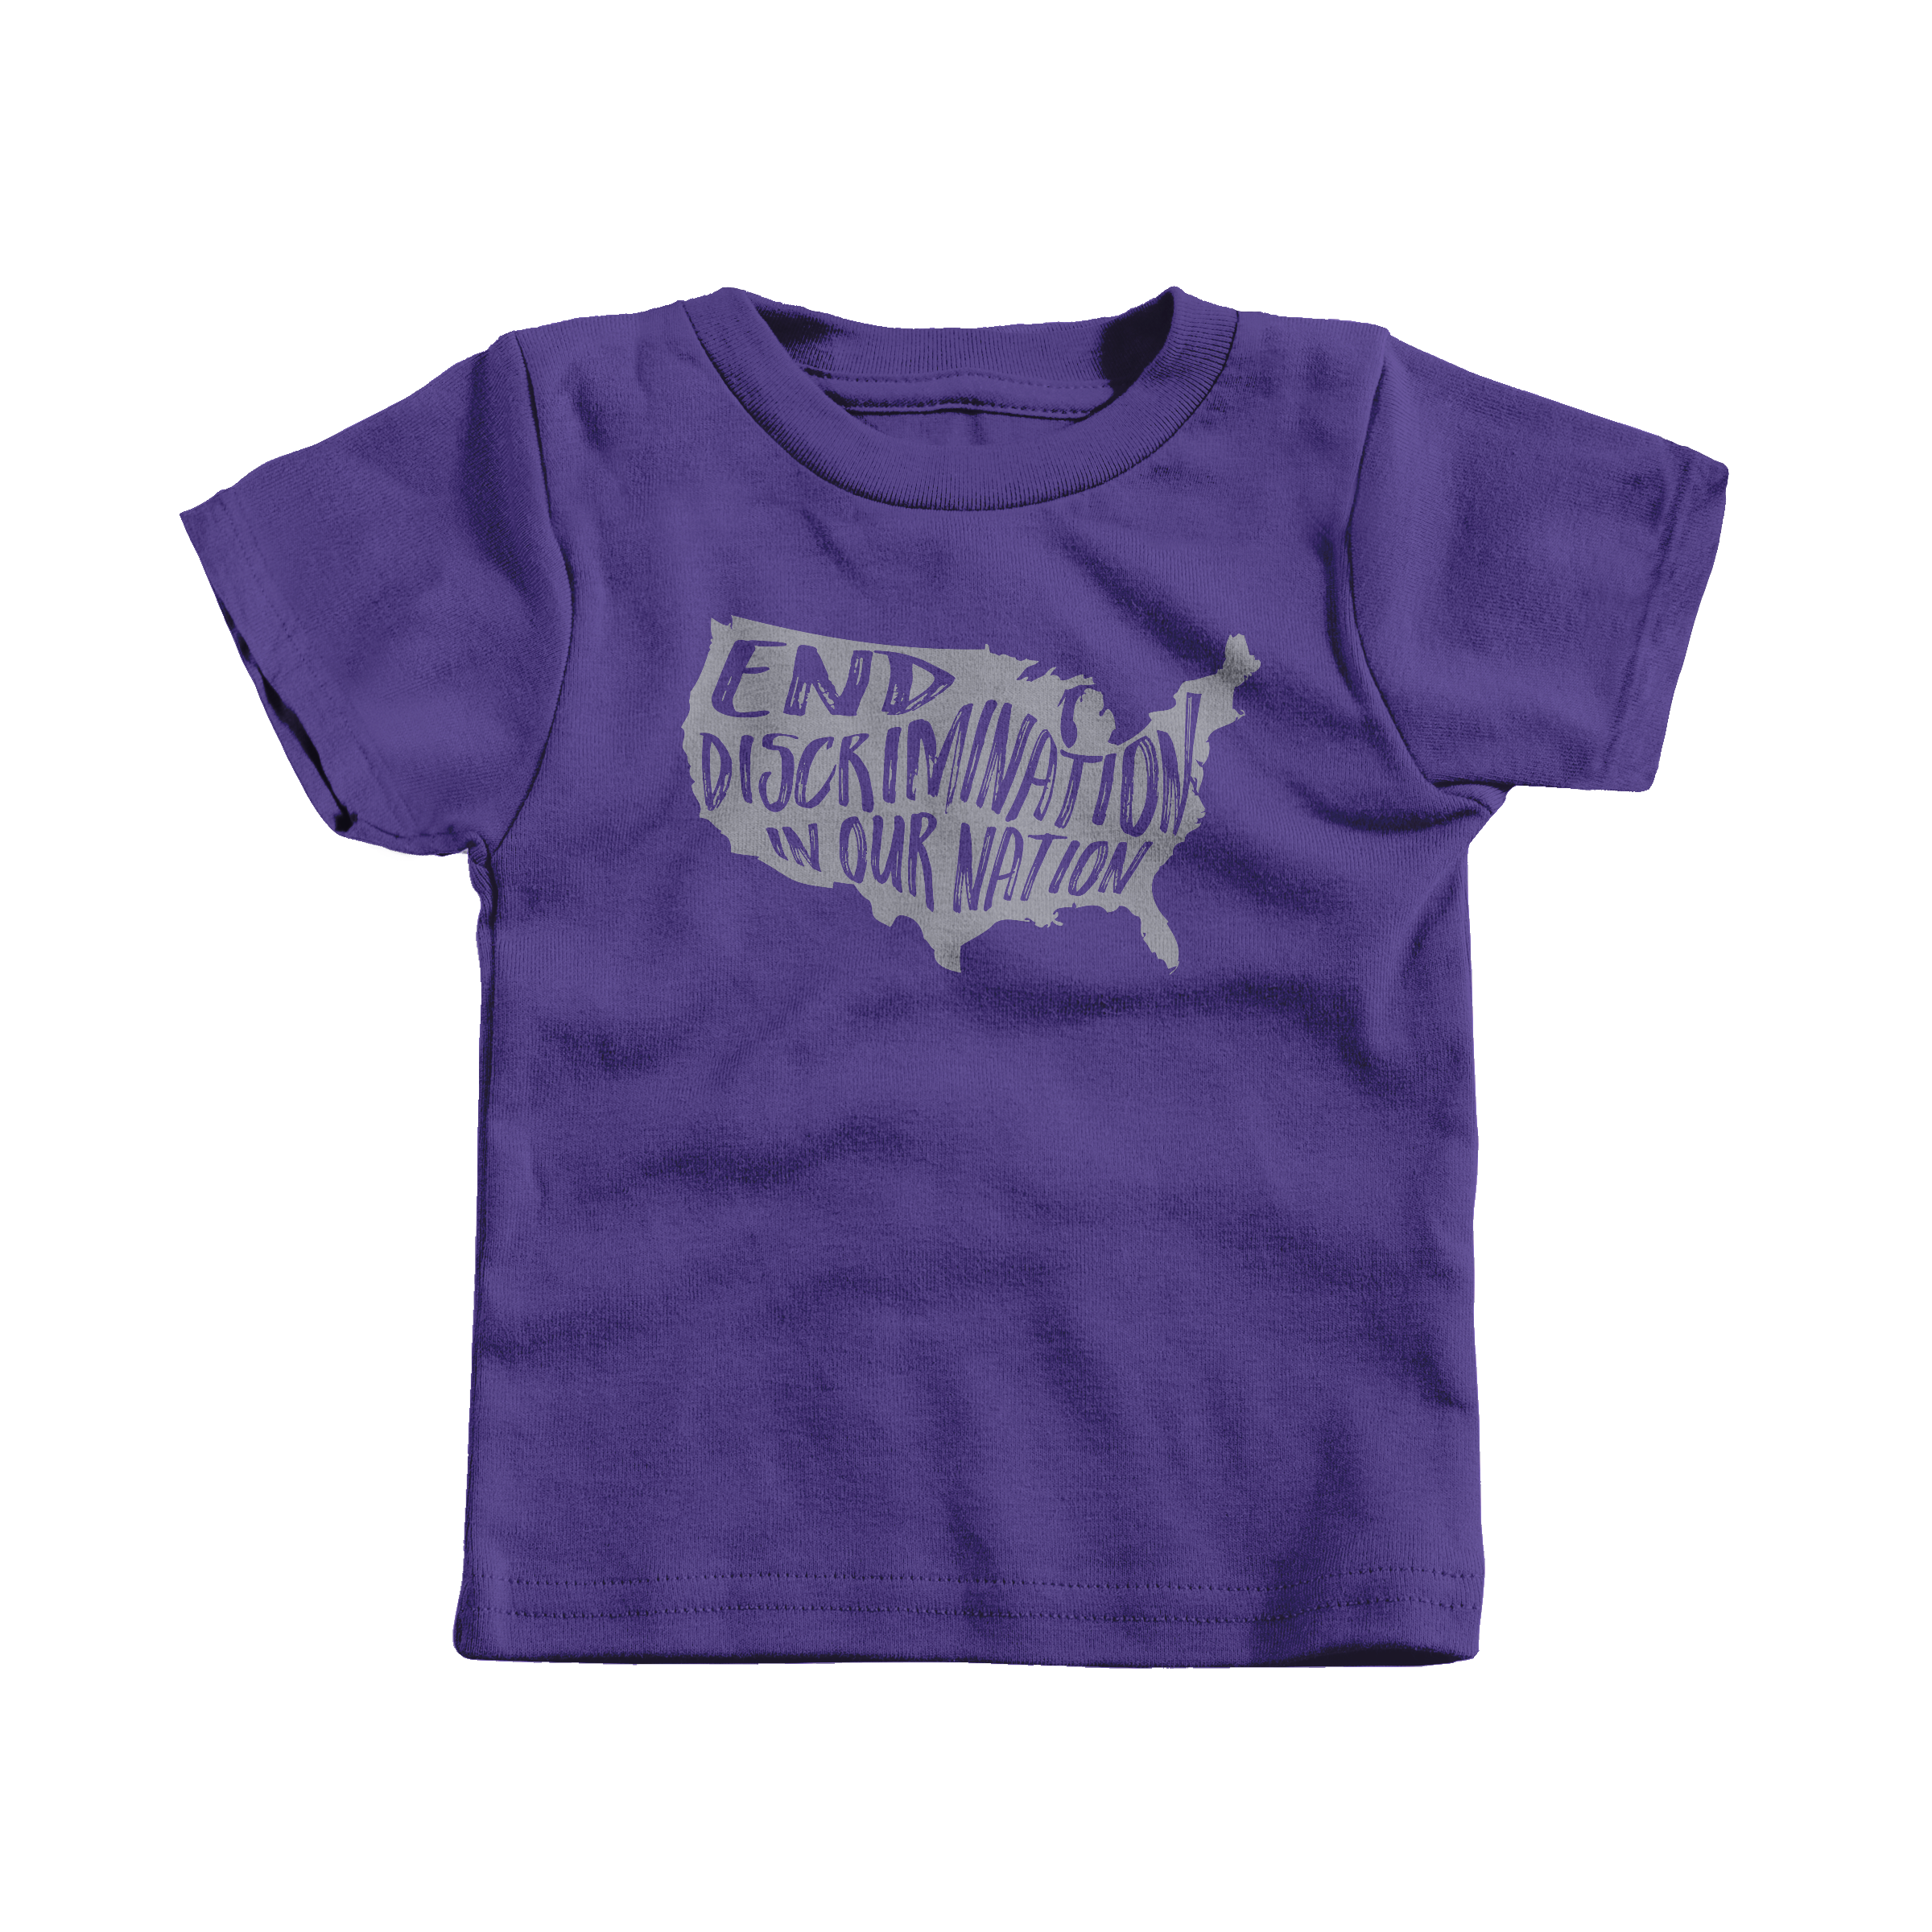 End Discrimination in Our Nation Purple (T-Shirt)